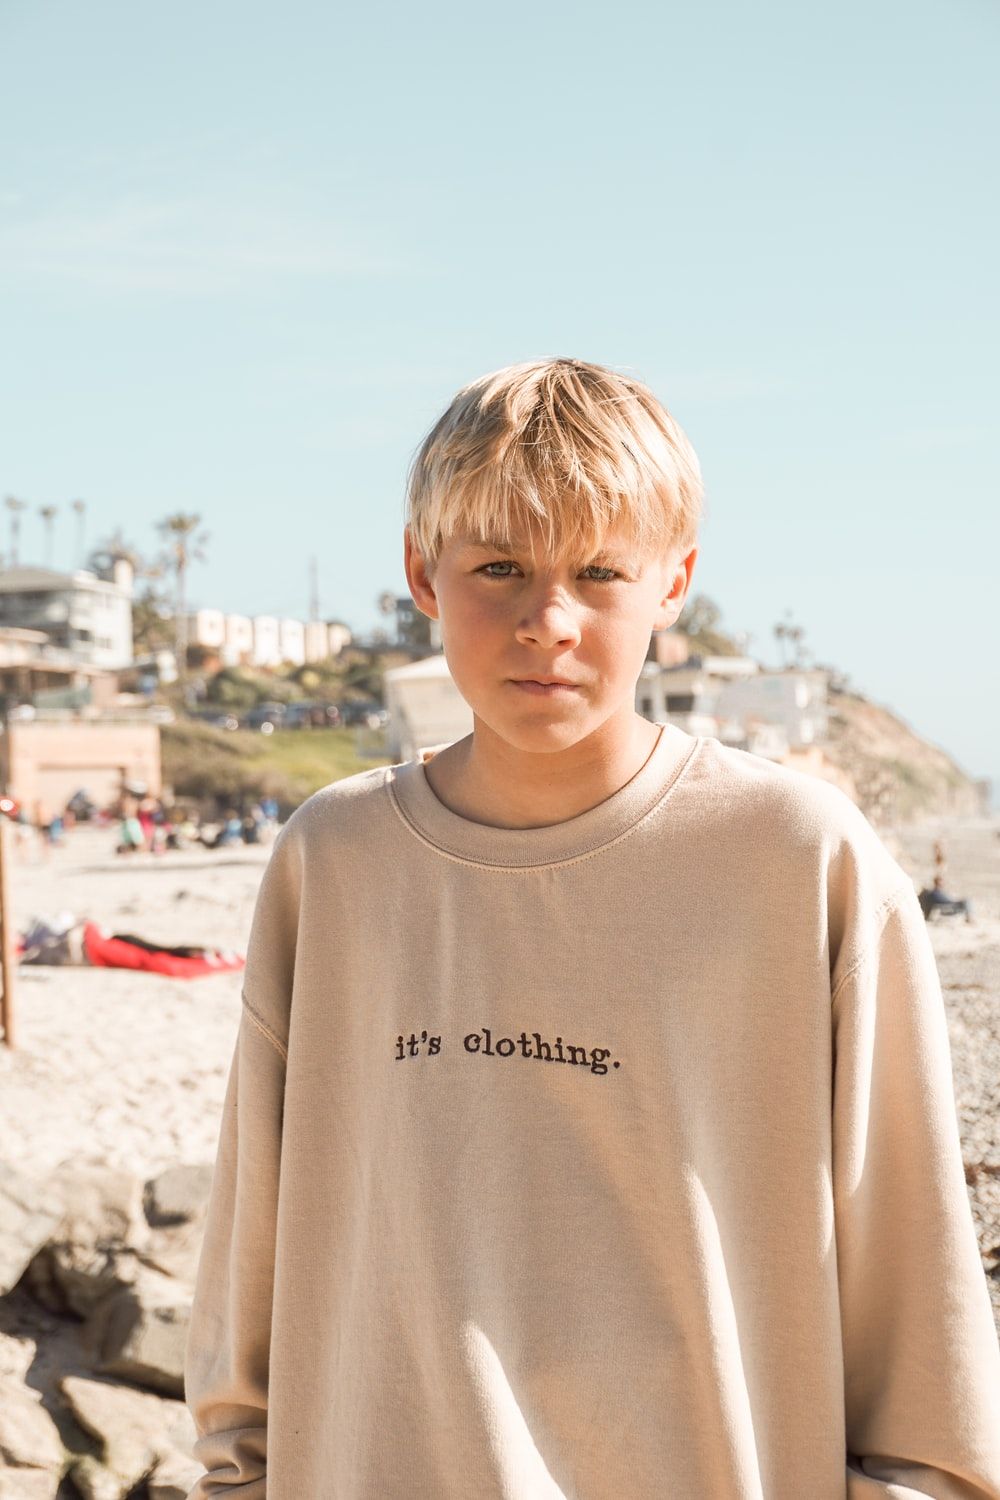 boy in white crew neck shirt standing on brown sand during daytime